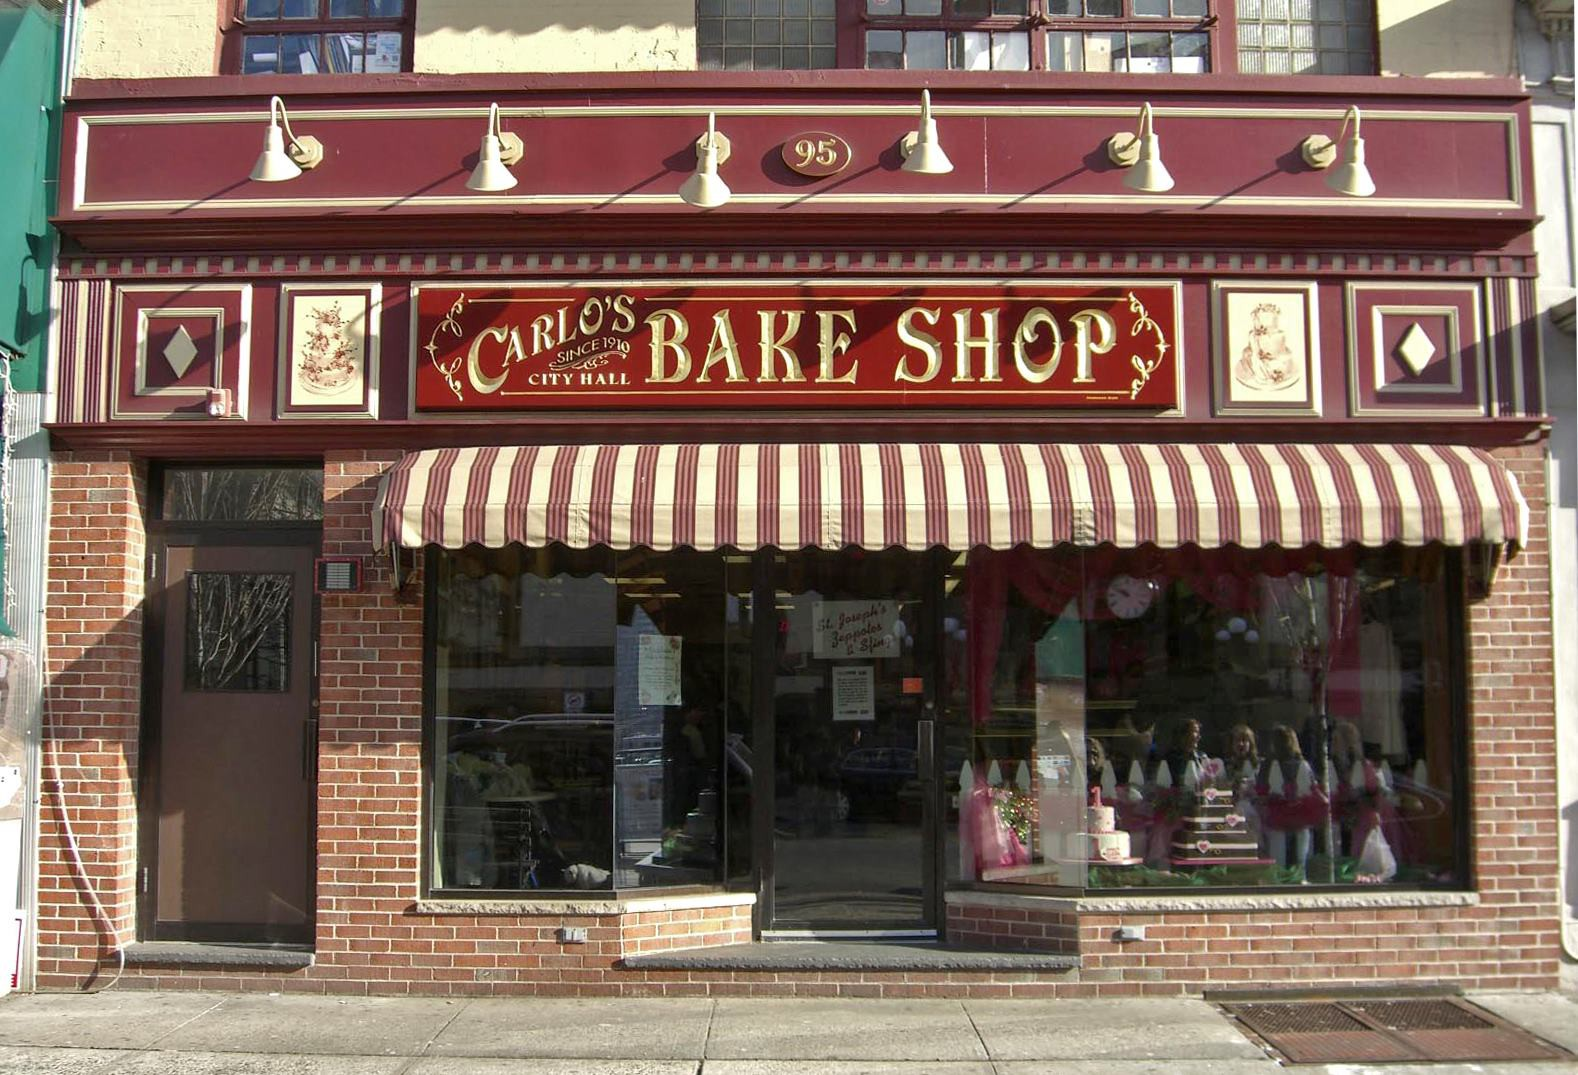 Carlo's Bake Shop photo